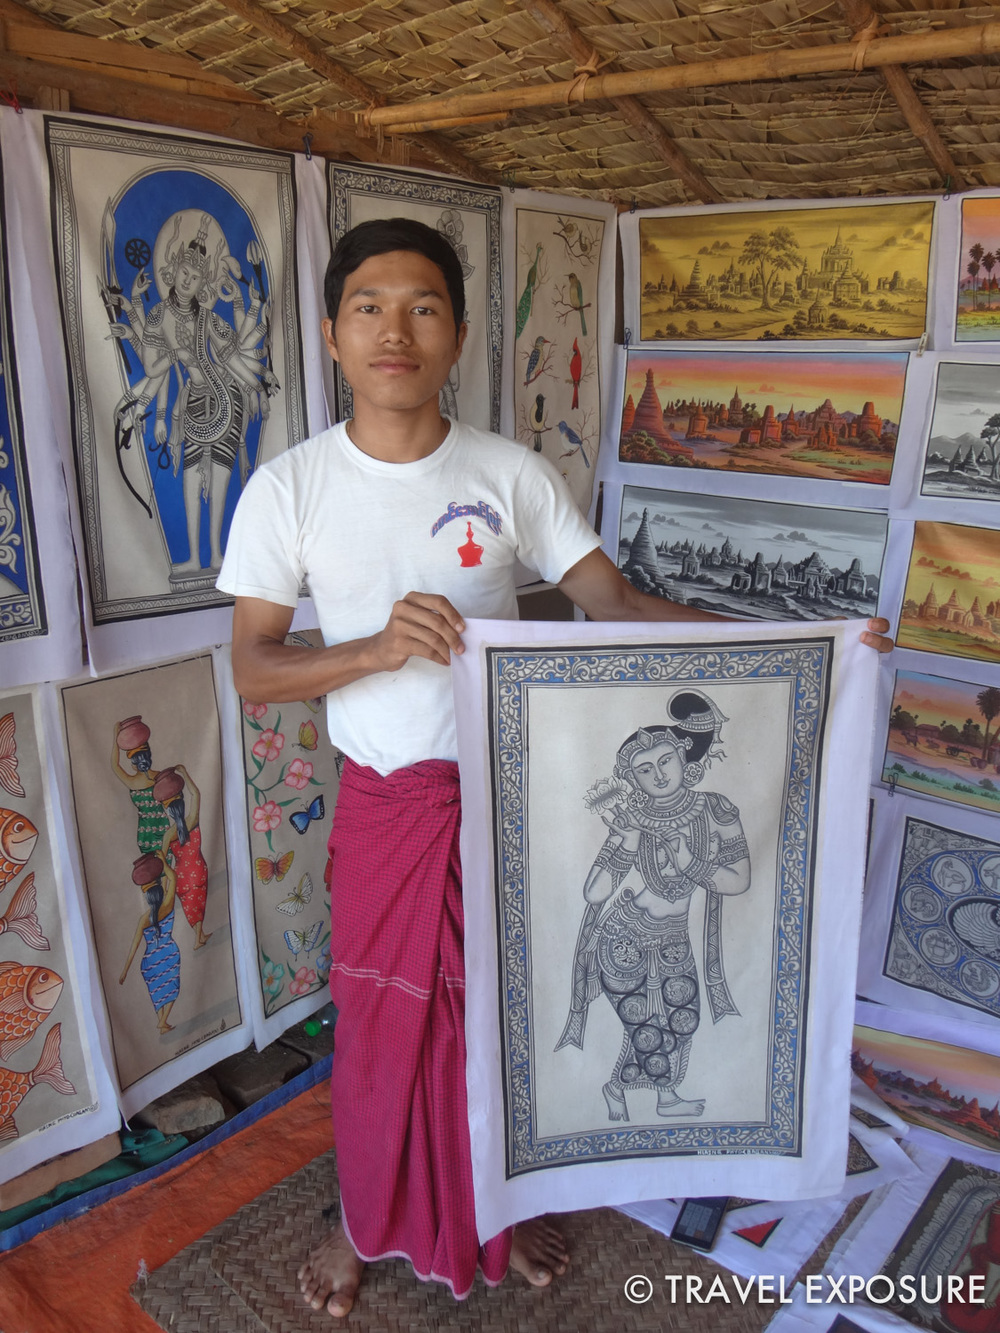 We bought this painting in Bagan